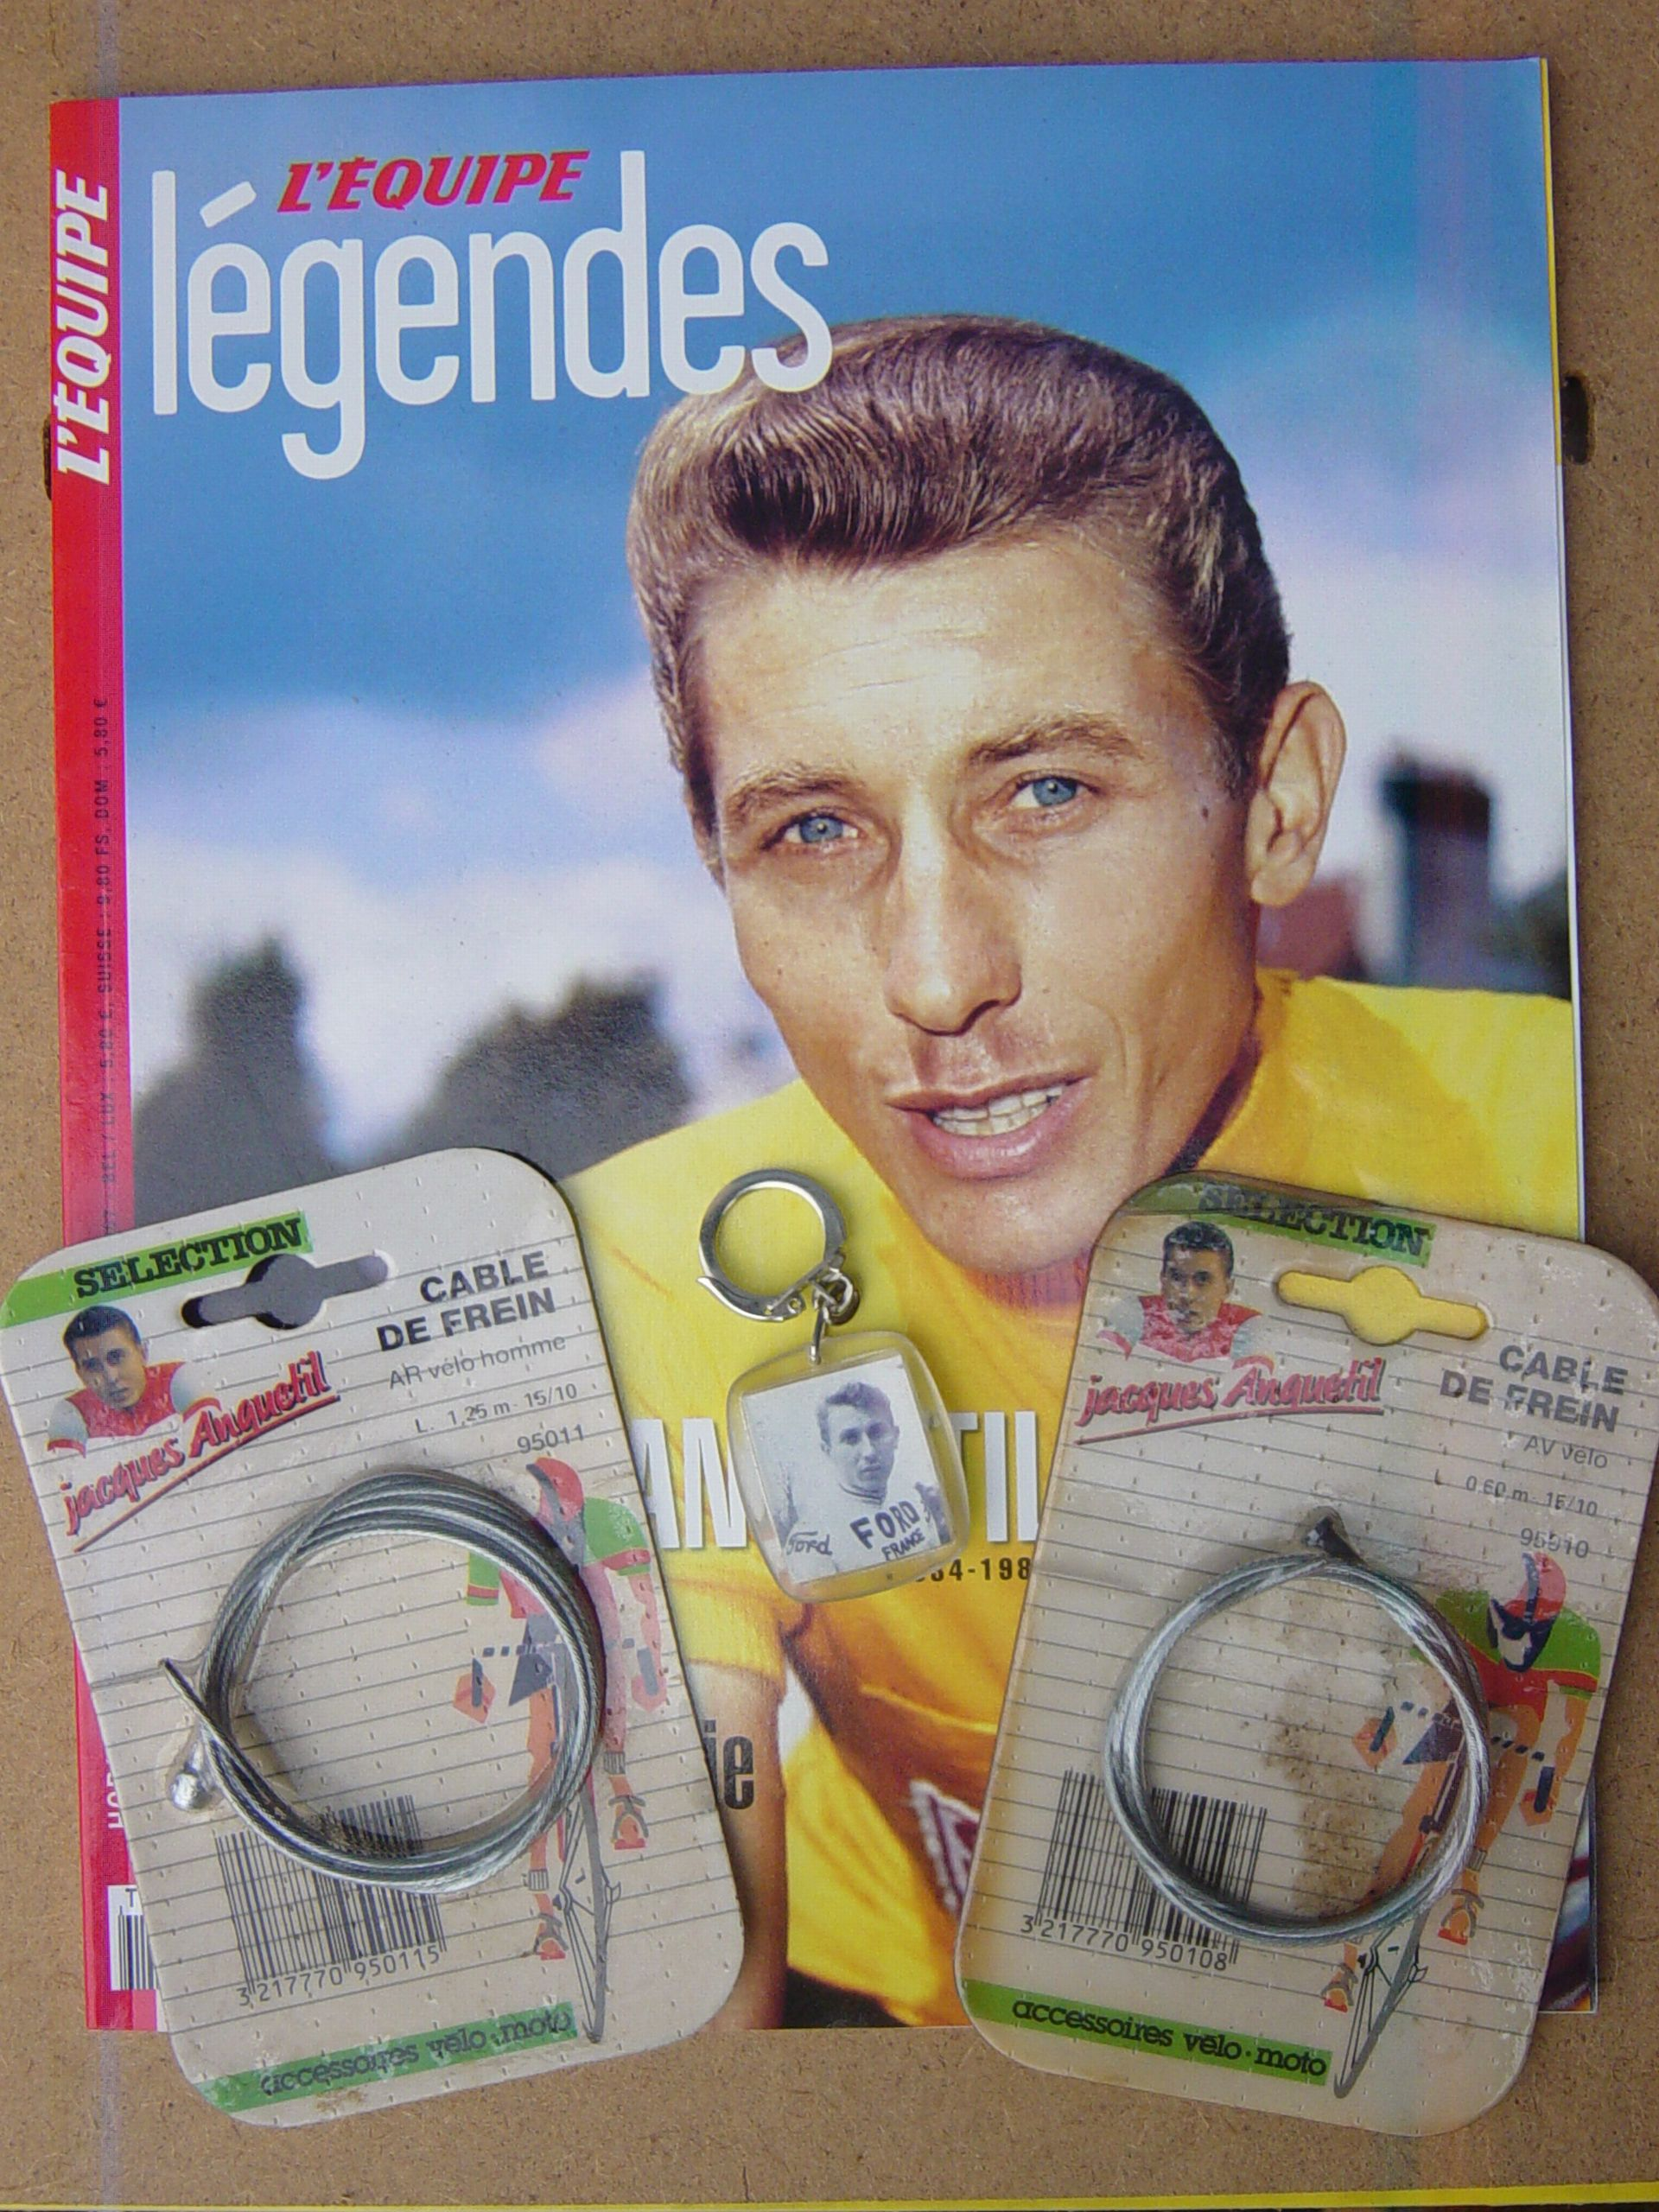 Jacques ANQUETIL 1966 - Page 2 442975Rlivrecblesdefreins